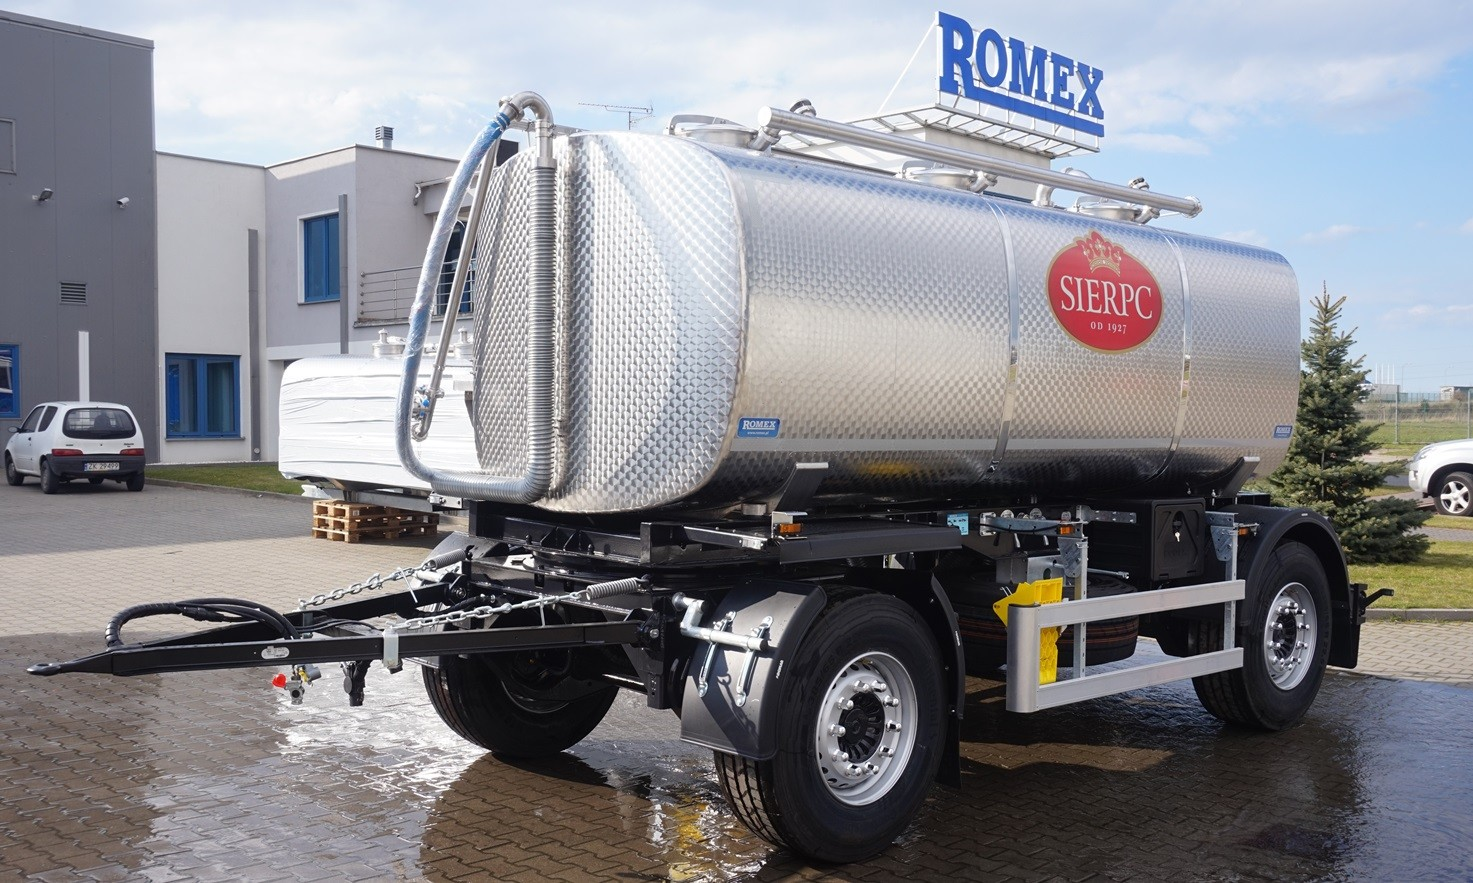 ROMEX - Milk collecting trailers